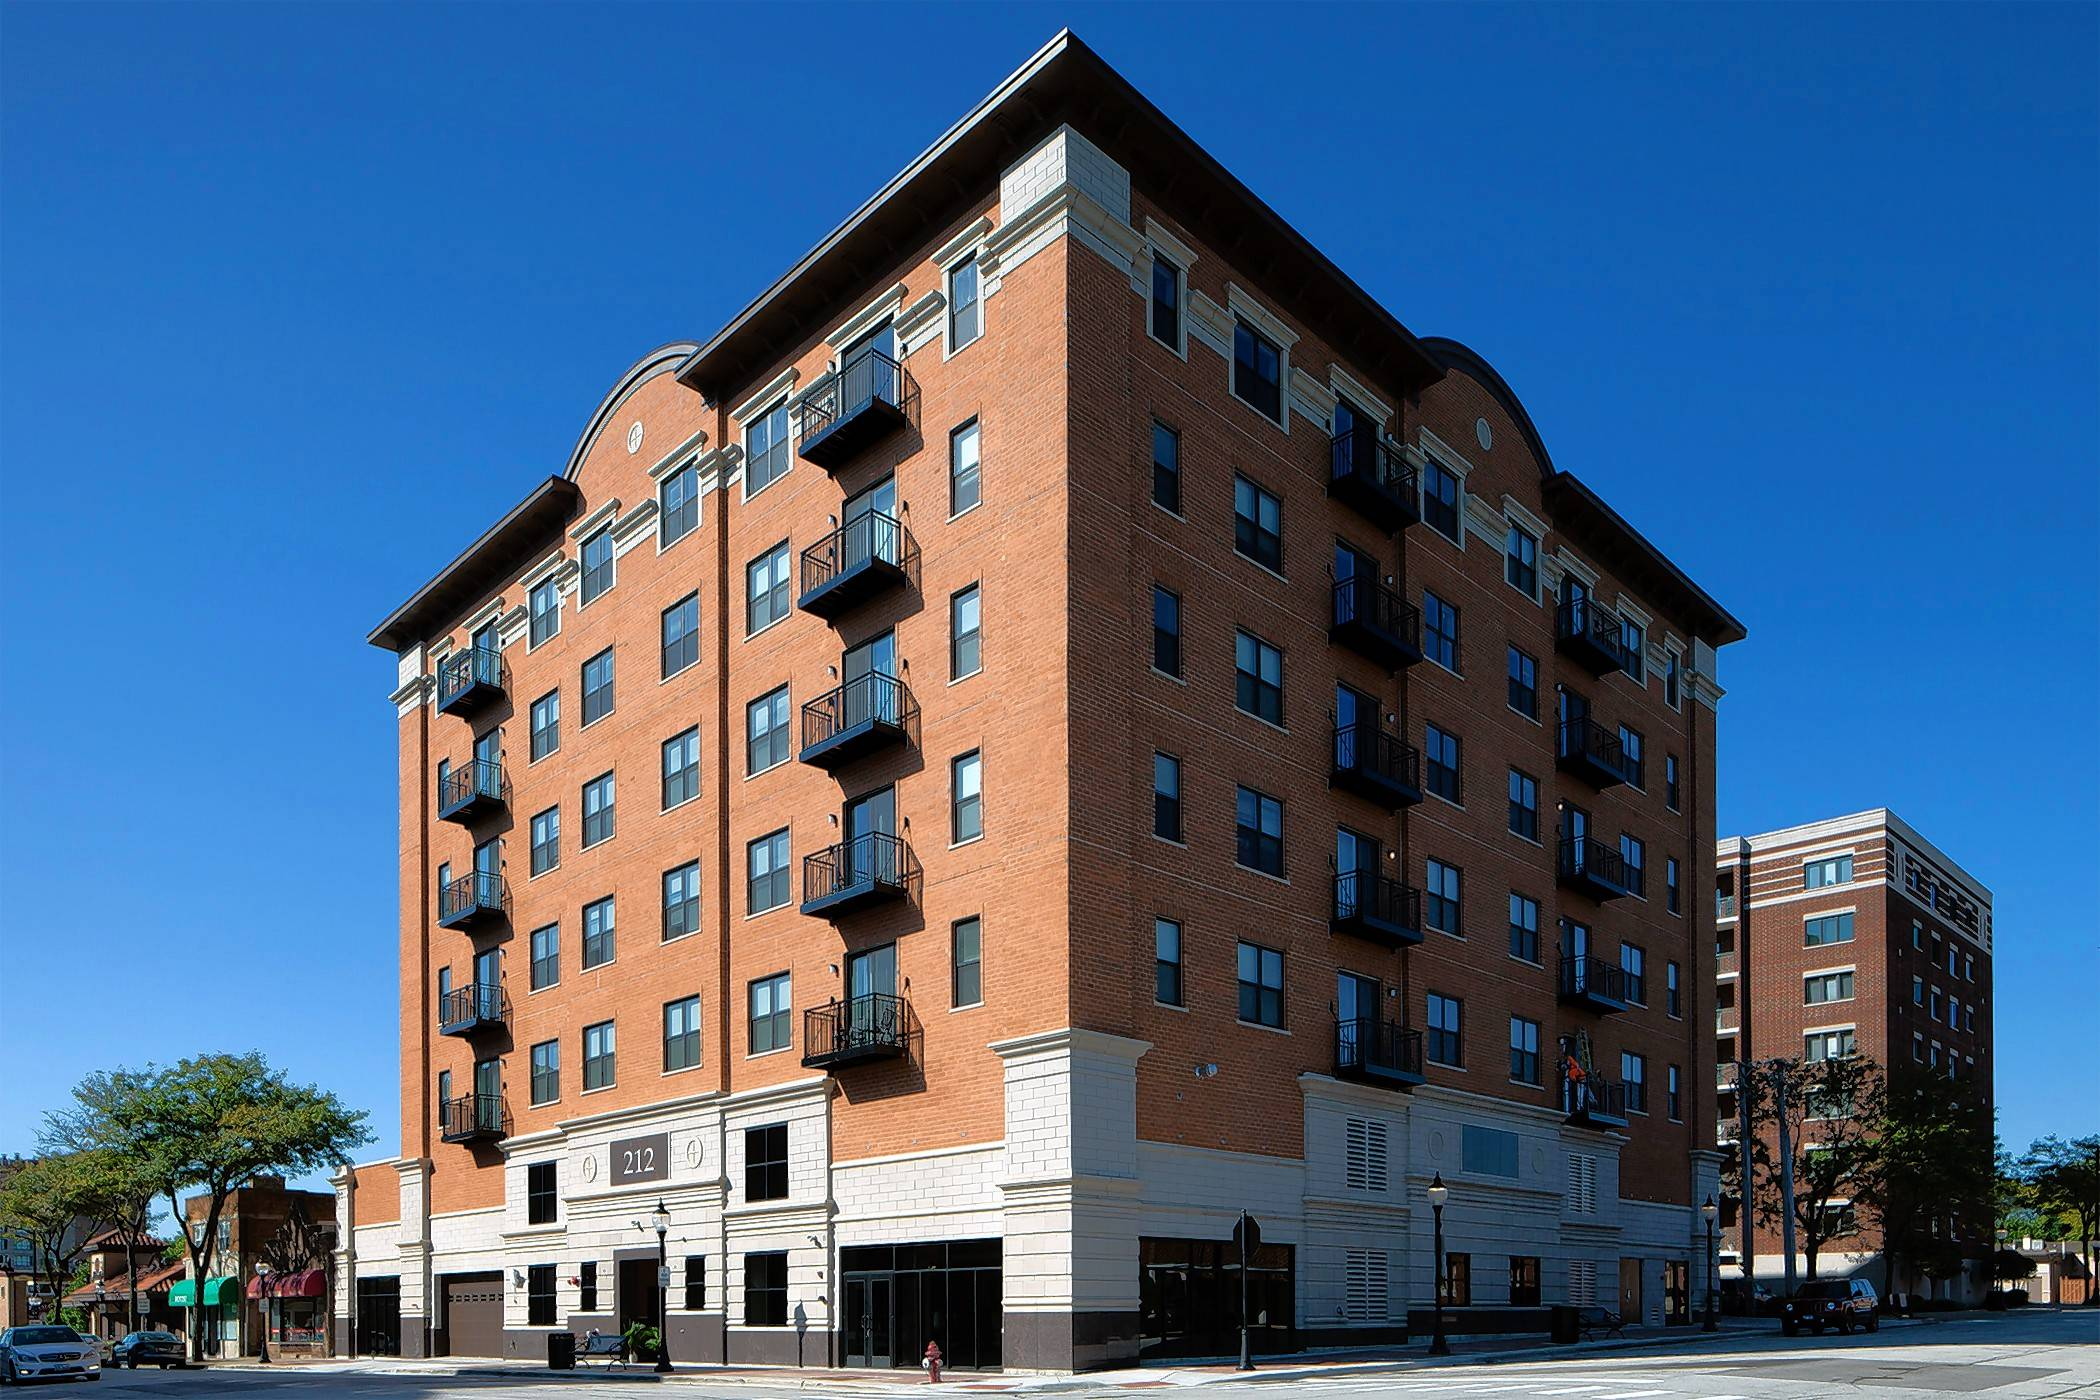 A seven-story, 45-unit apartment building at 212 N. Dunton Ave. in downtown Arlington Heights is now complete.